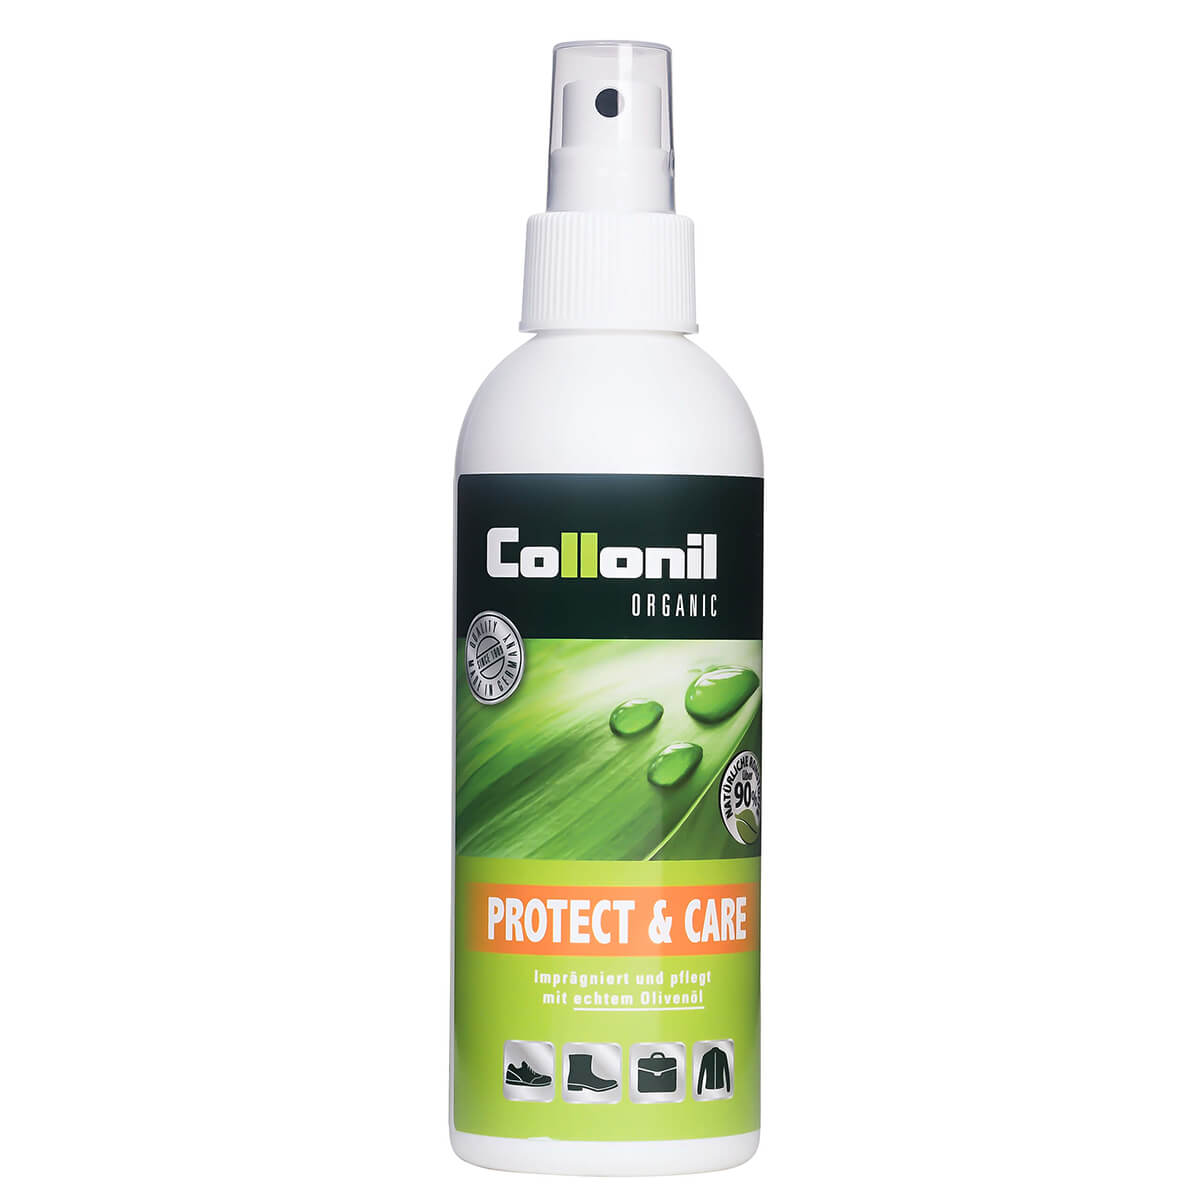 Collonil Protect & Care Pyk Copenhagen